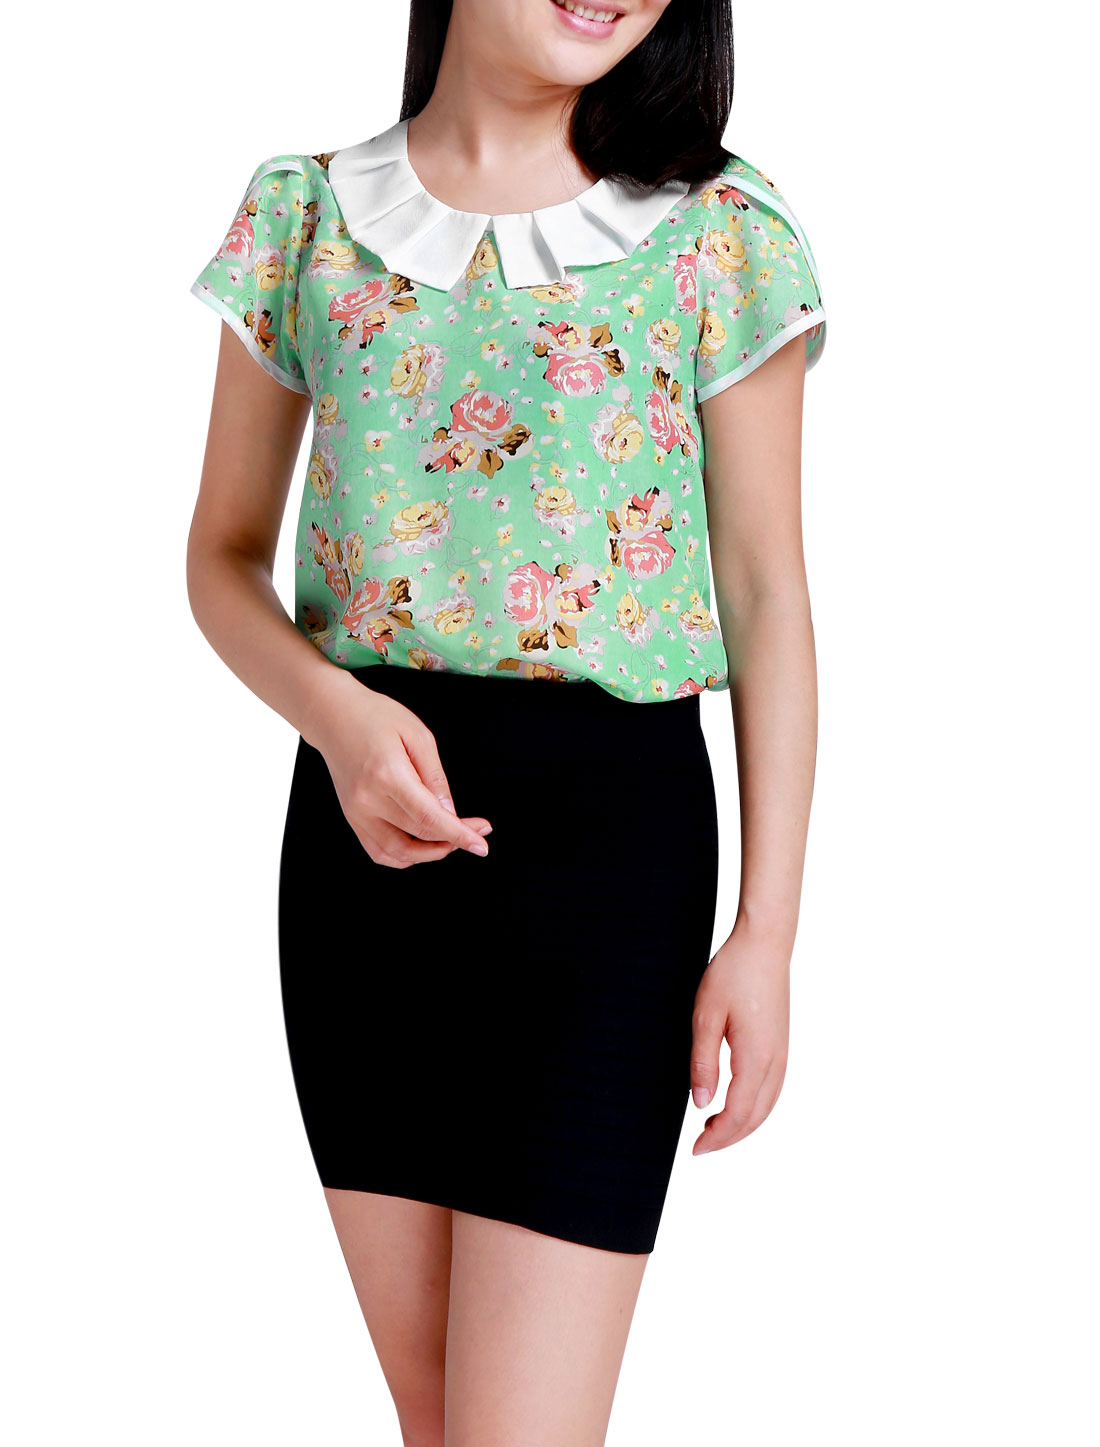 Women Peter Pan Collar Floral Print Chiffon Shirt Mint Pink M